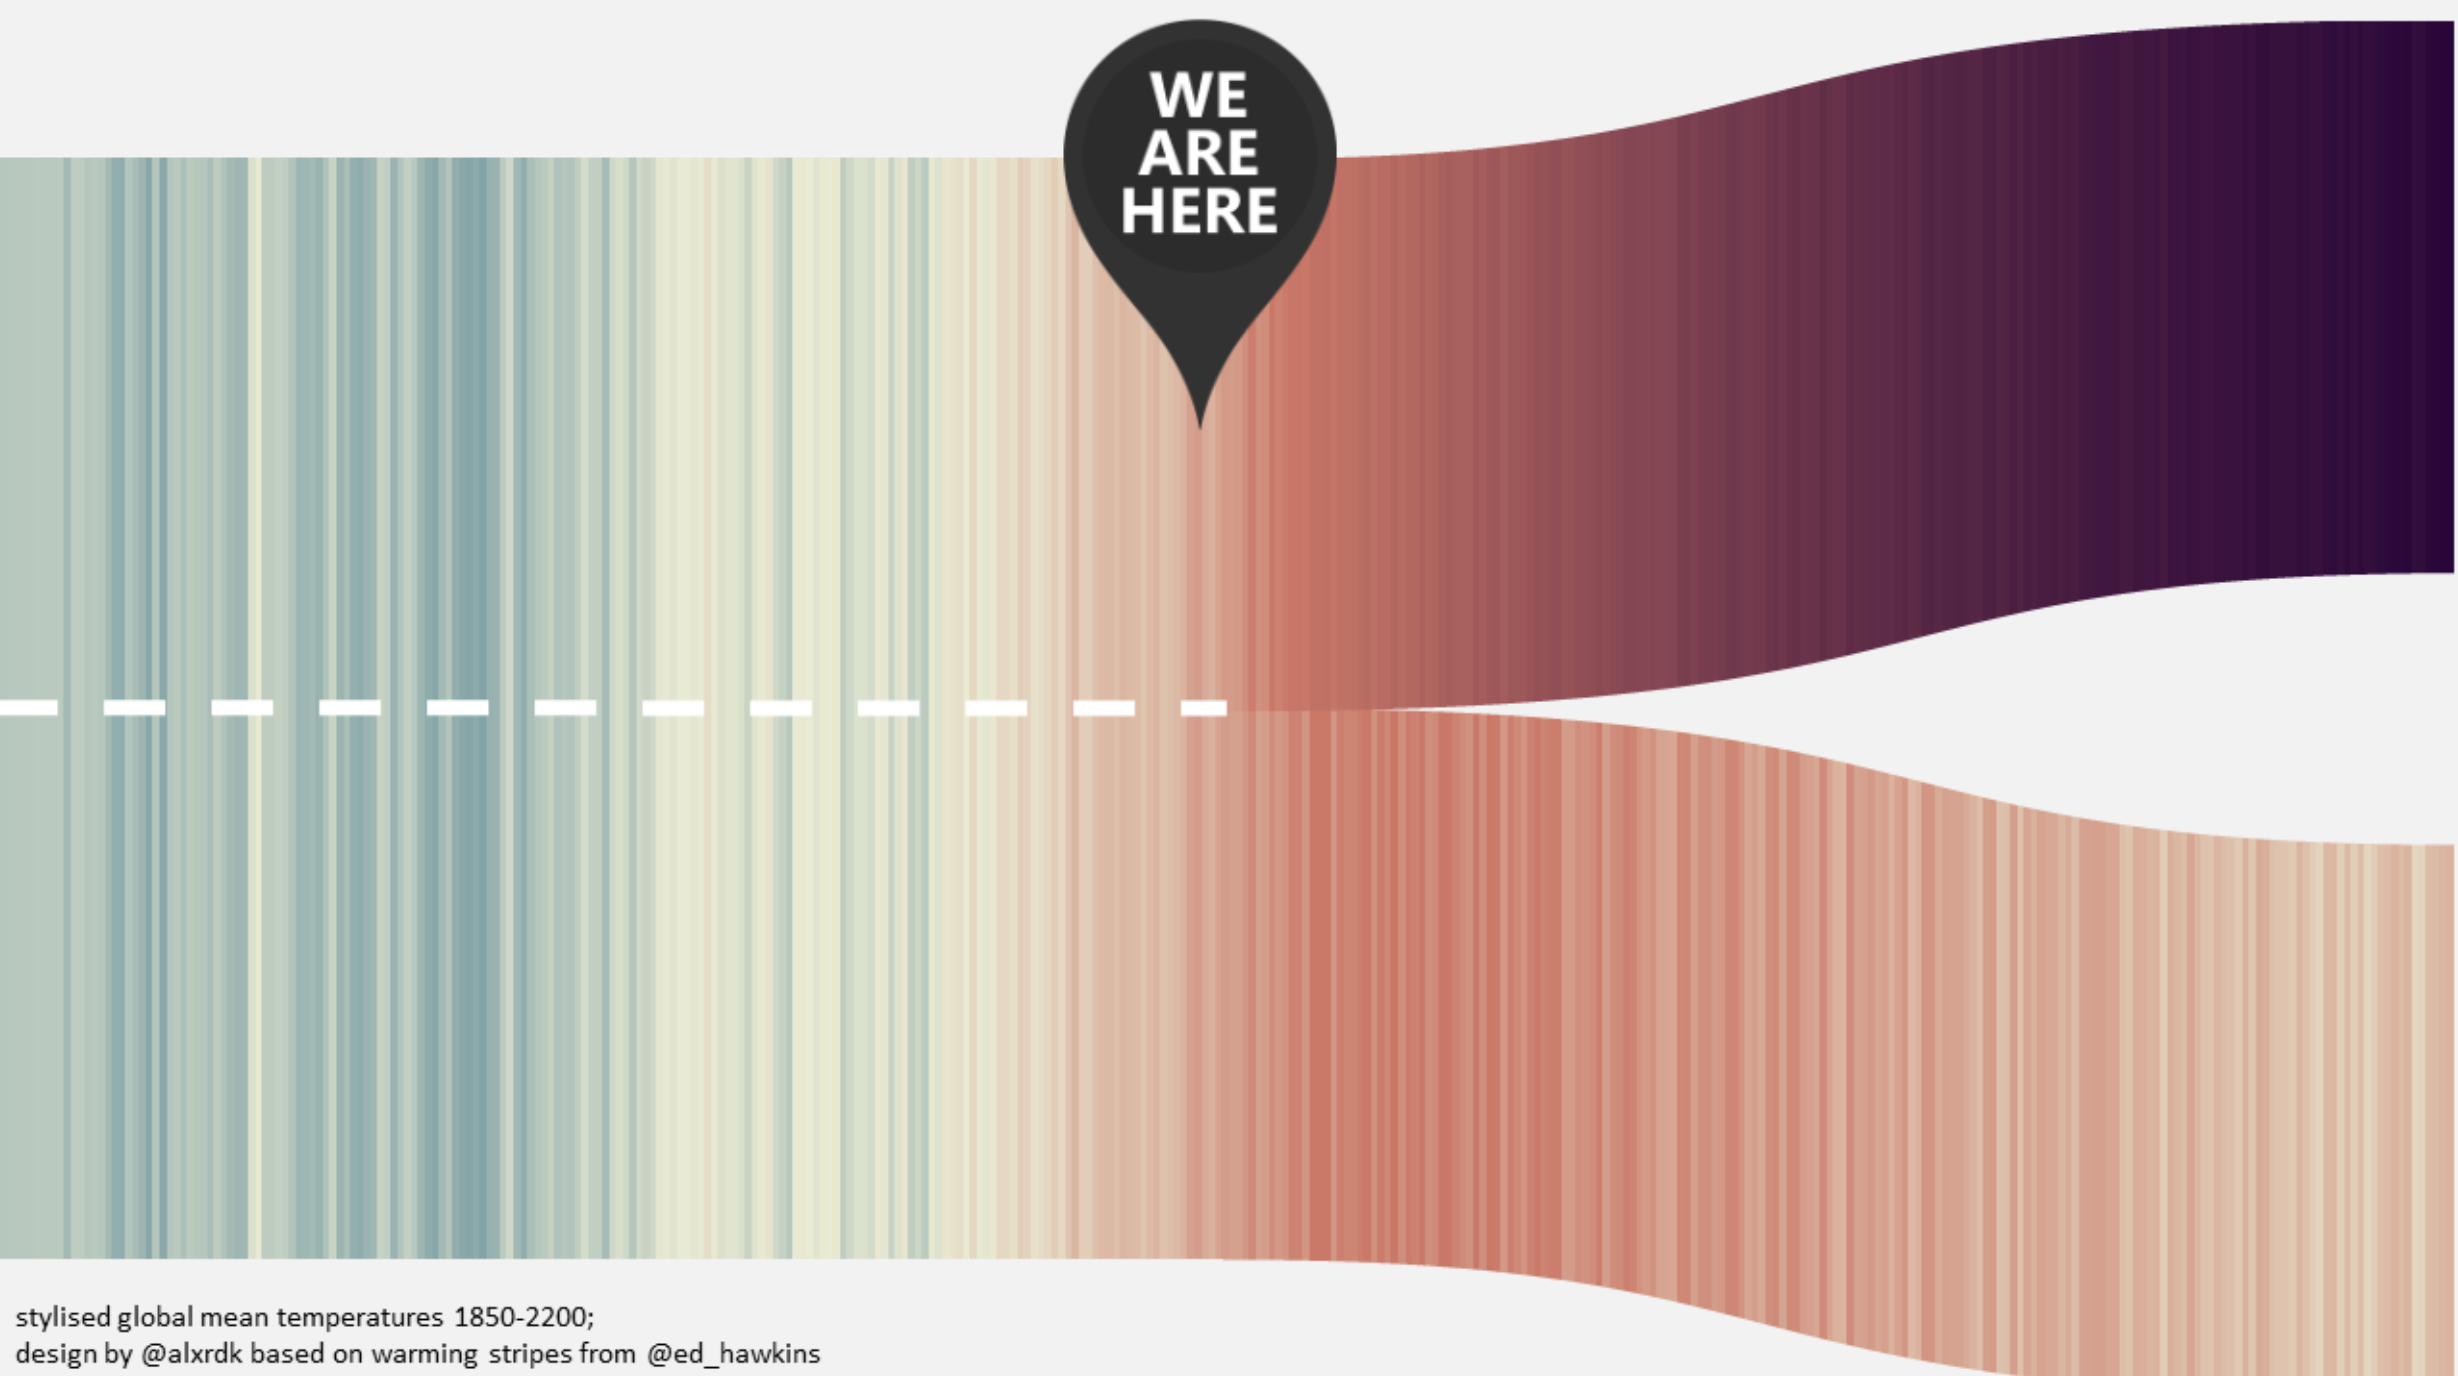 New Climate Change Visualisation Presents Two Stark Choices For Our Future